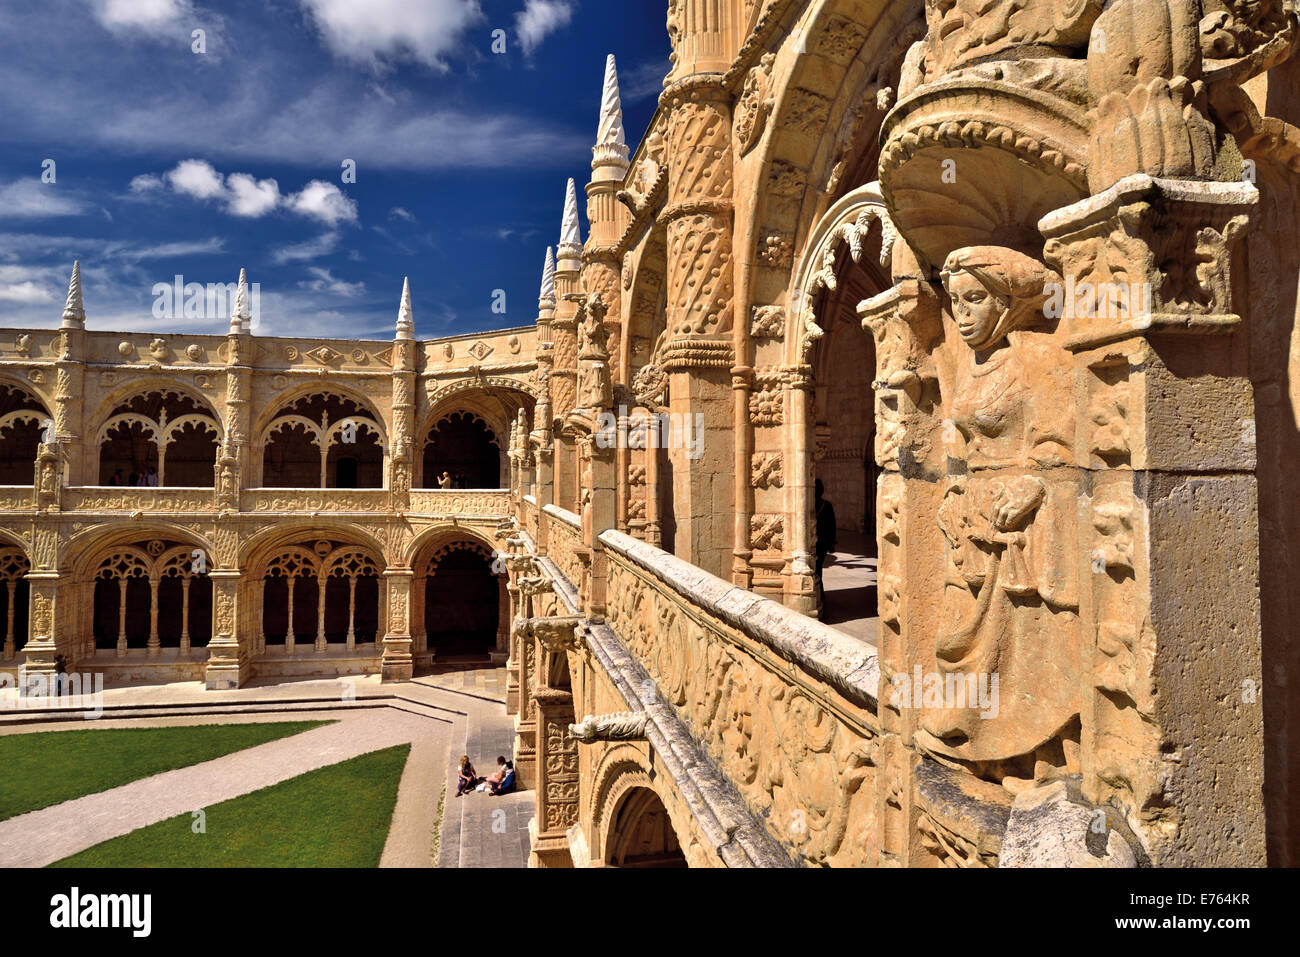 Portugal, Lisbon: Dettail of the manueline style at the cloister of Jeronimos Monastery - Stock Image